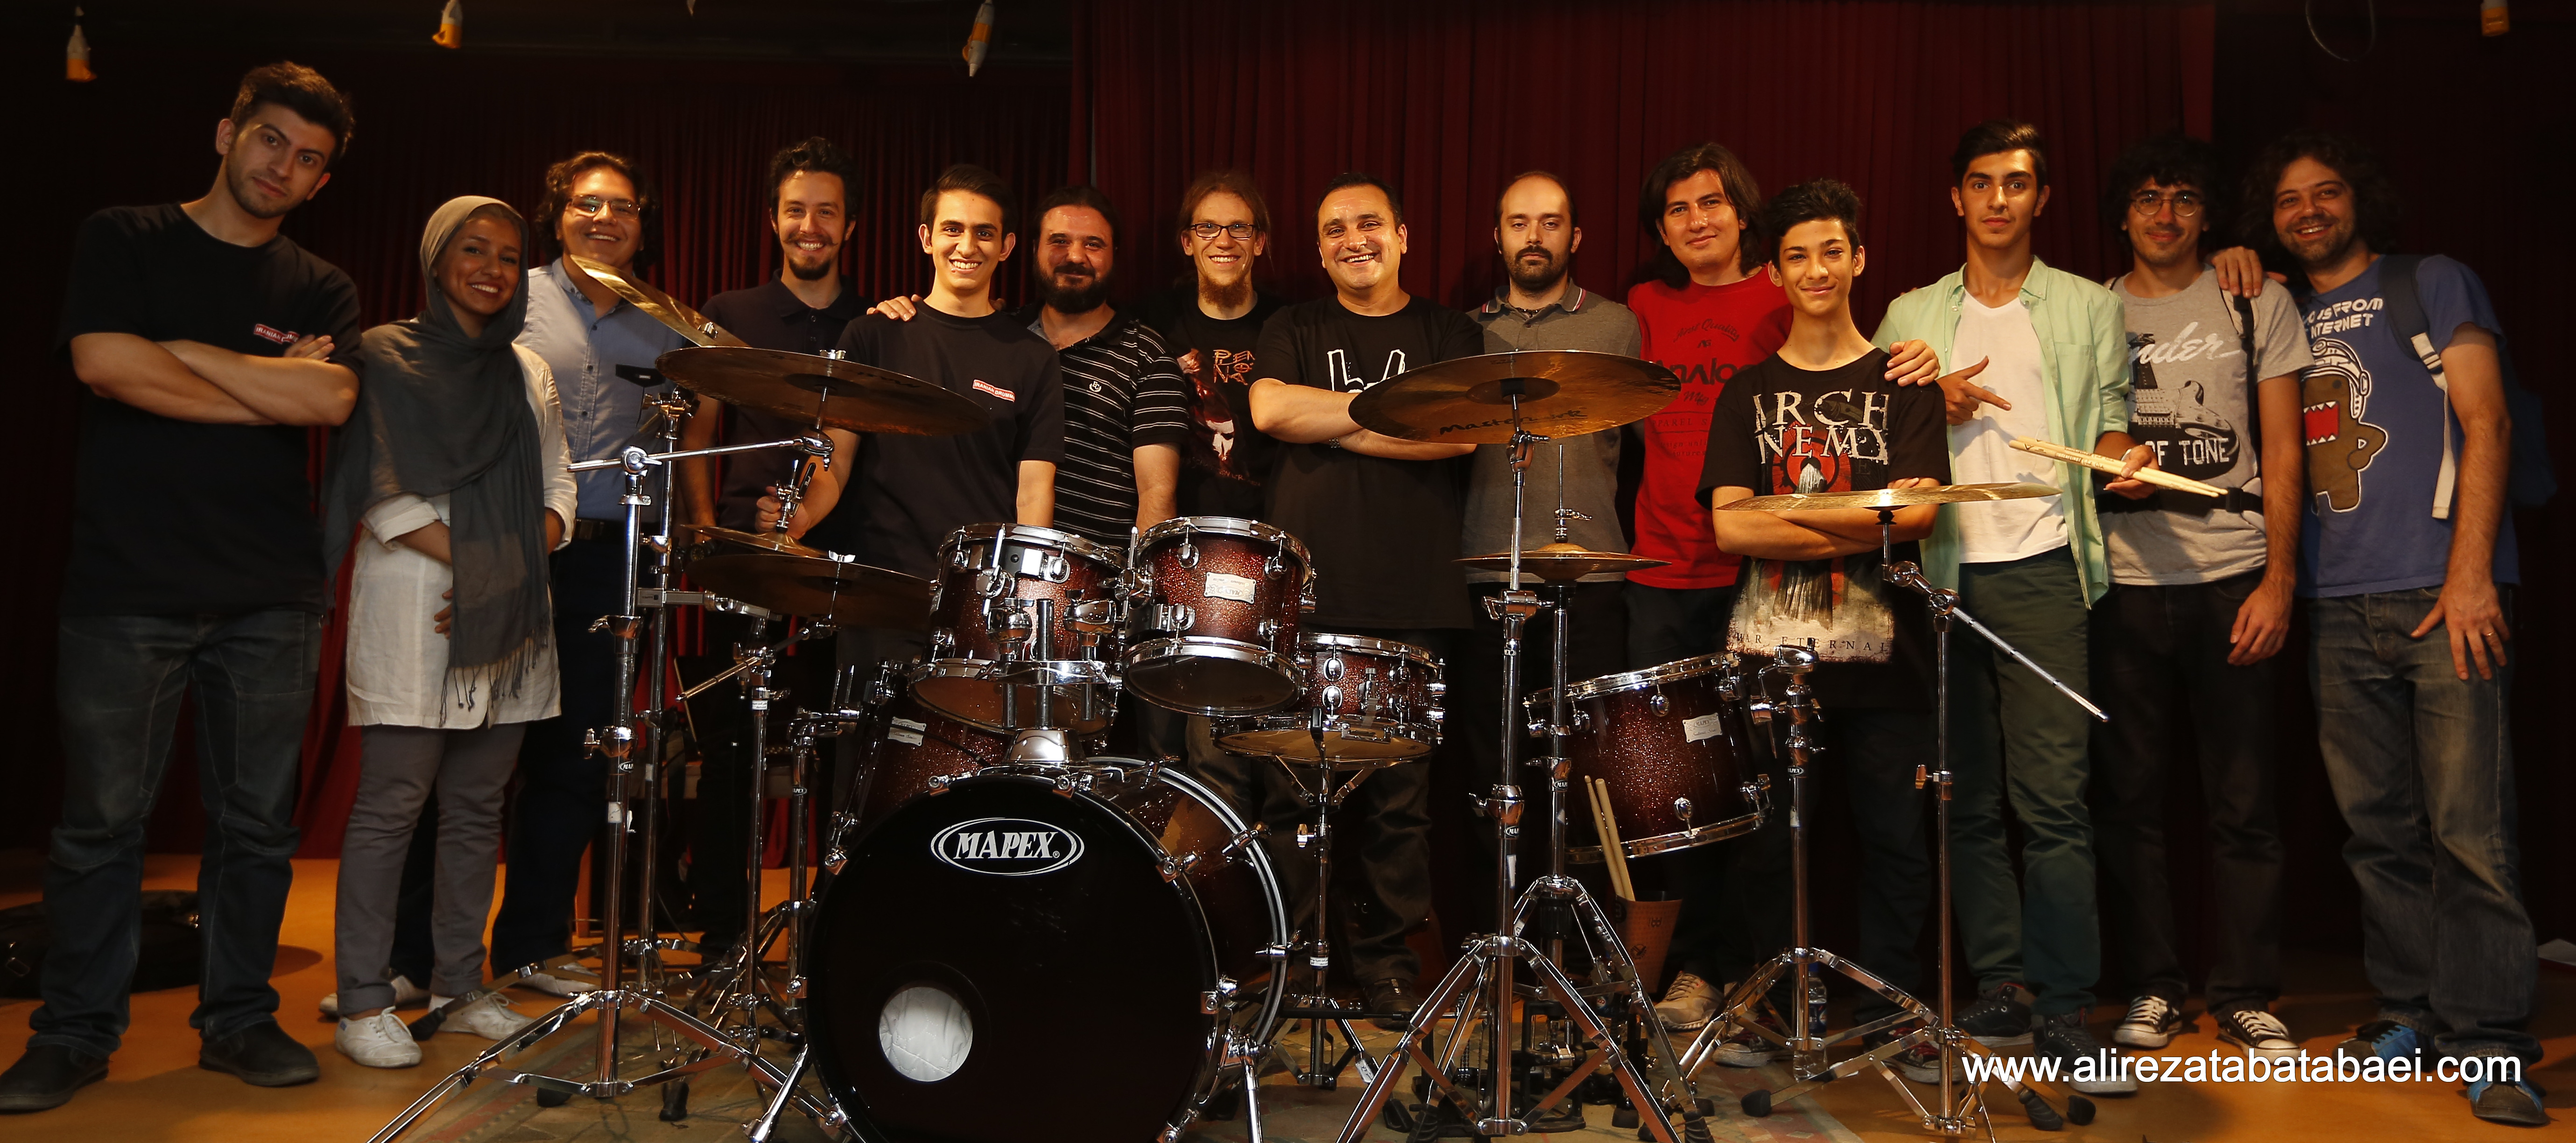 ANDI ROHDE, the young professional Drummer from Hamburg in Tehran ...